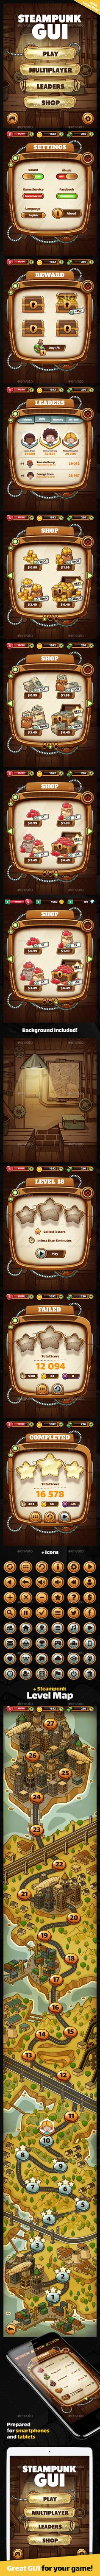 Steampunk GUI with Industrial Level Map — Photoshop PSD #window #mechanical • Download ➝ https://graphicriver.net/item/steampunk-gui-with-industrial-level-map/20479933?ref=pxcr